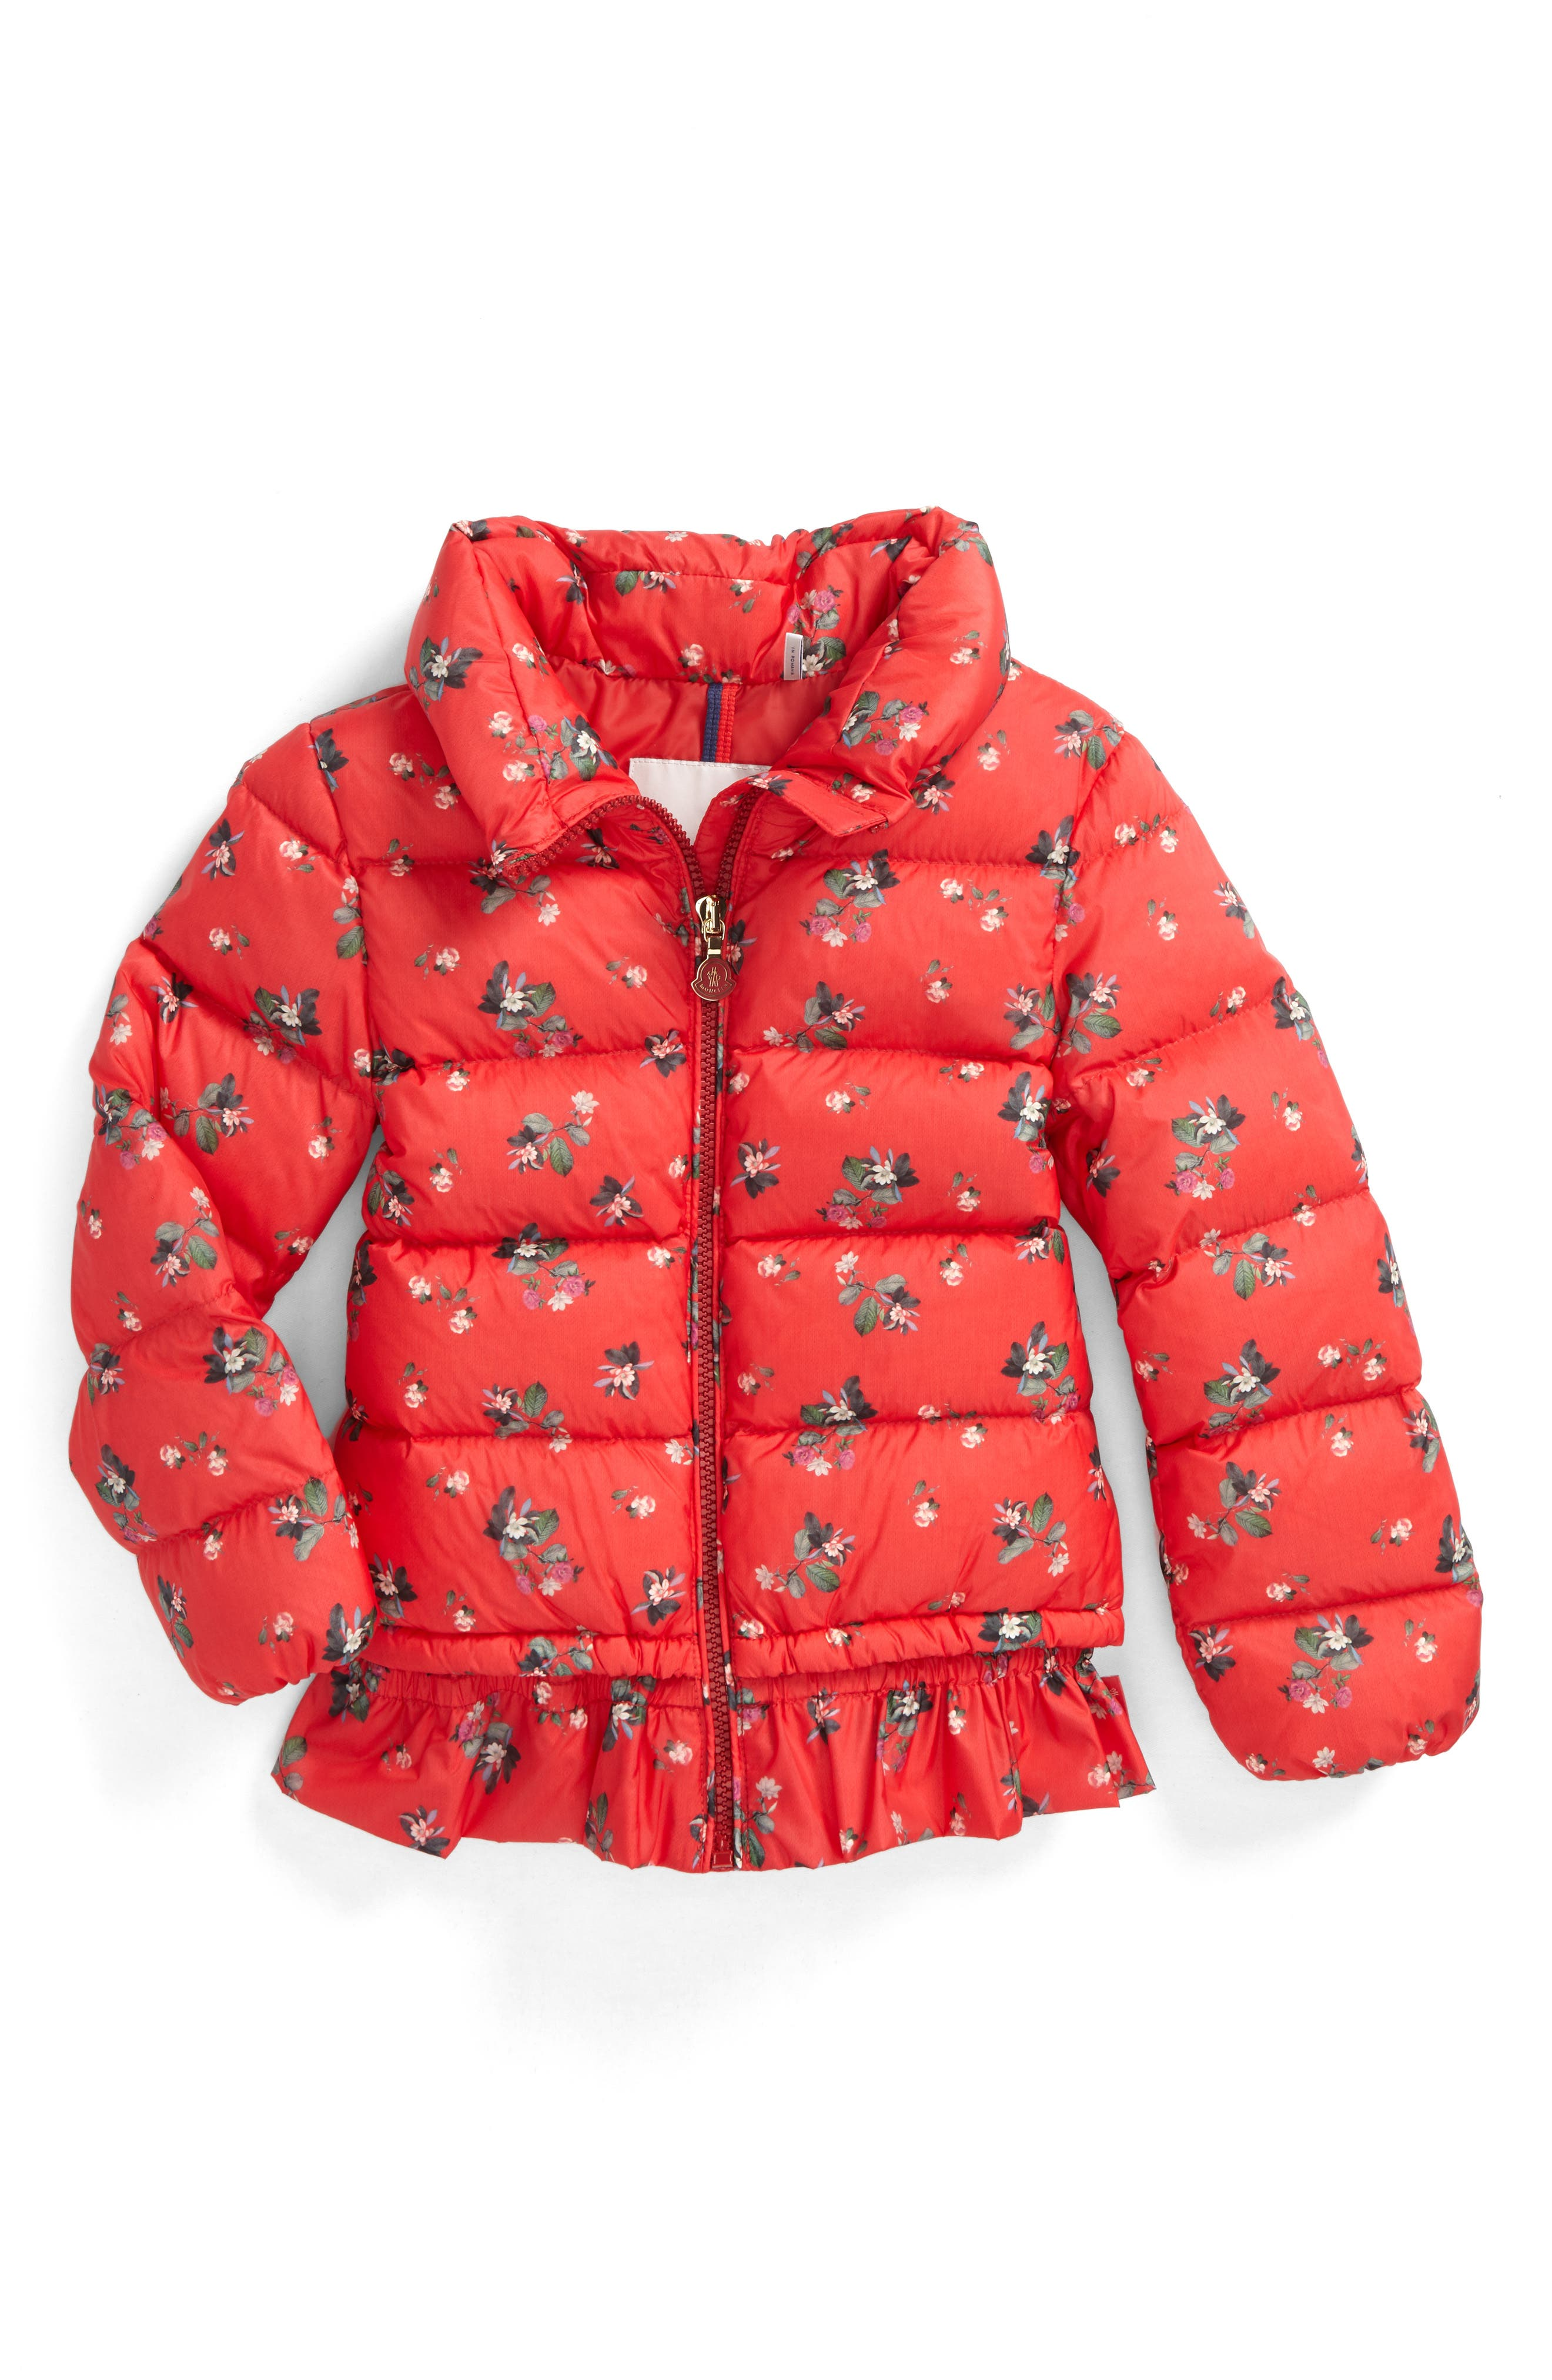 Anette Water-Resistant Down Jacket,                             Main thumbnail 1, color,                             610